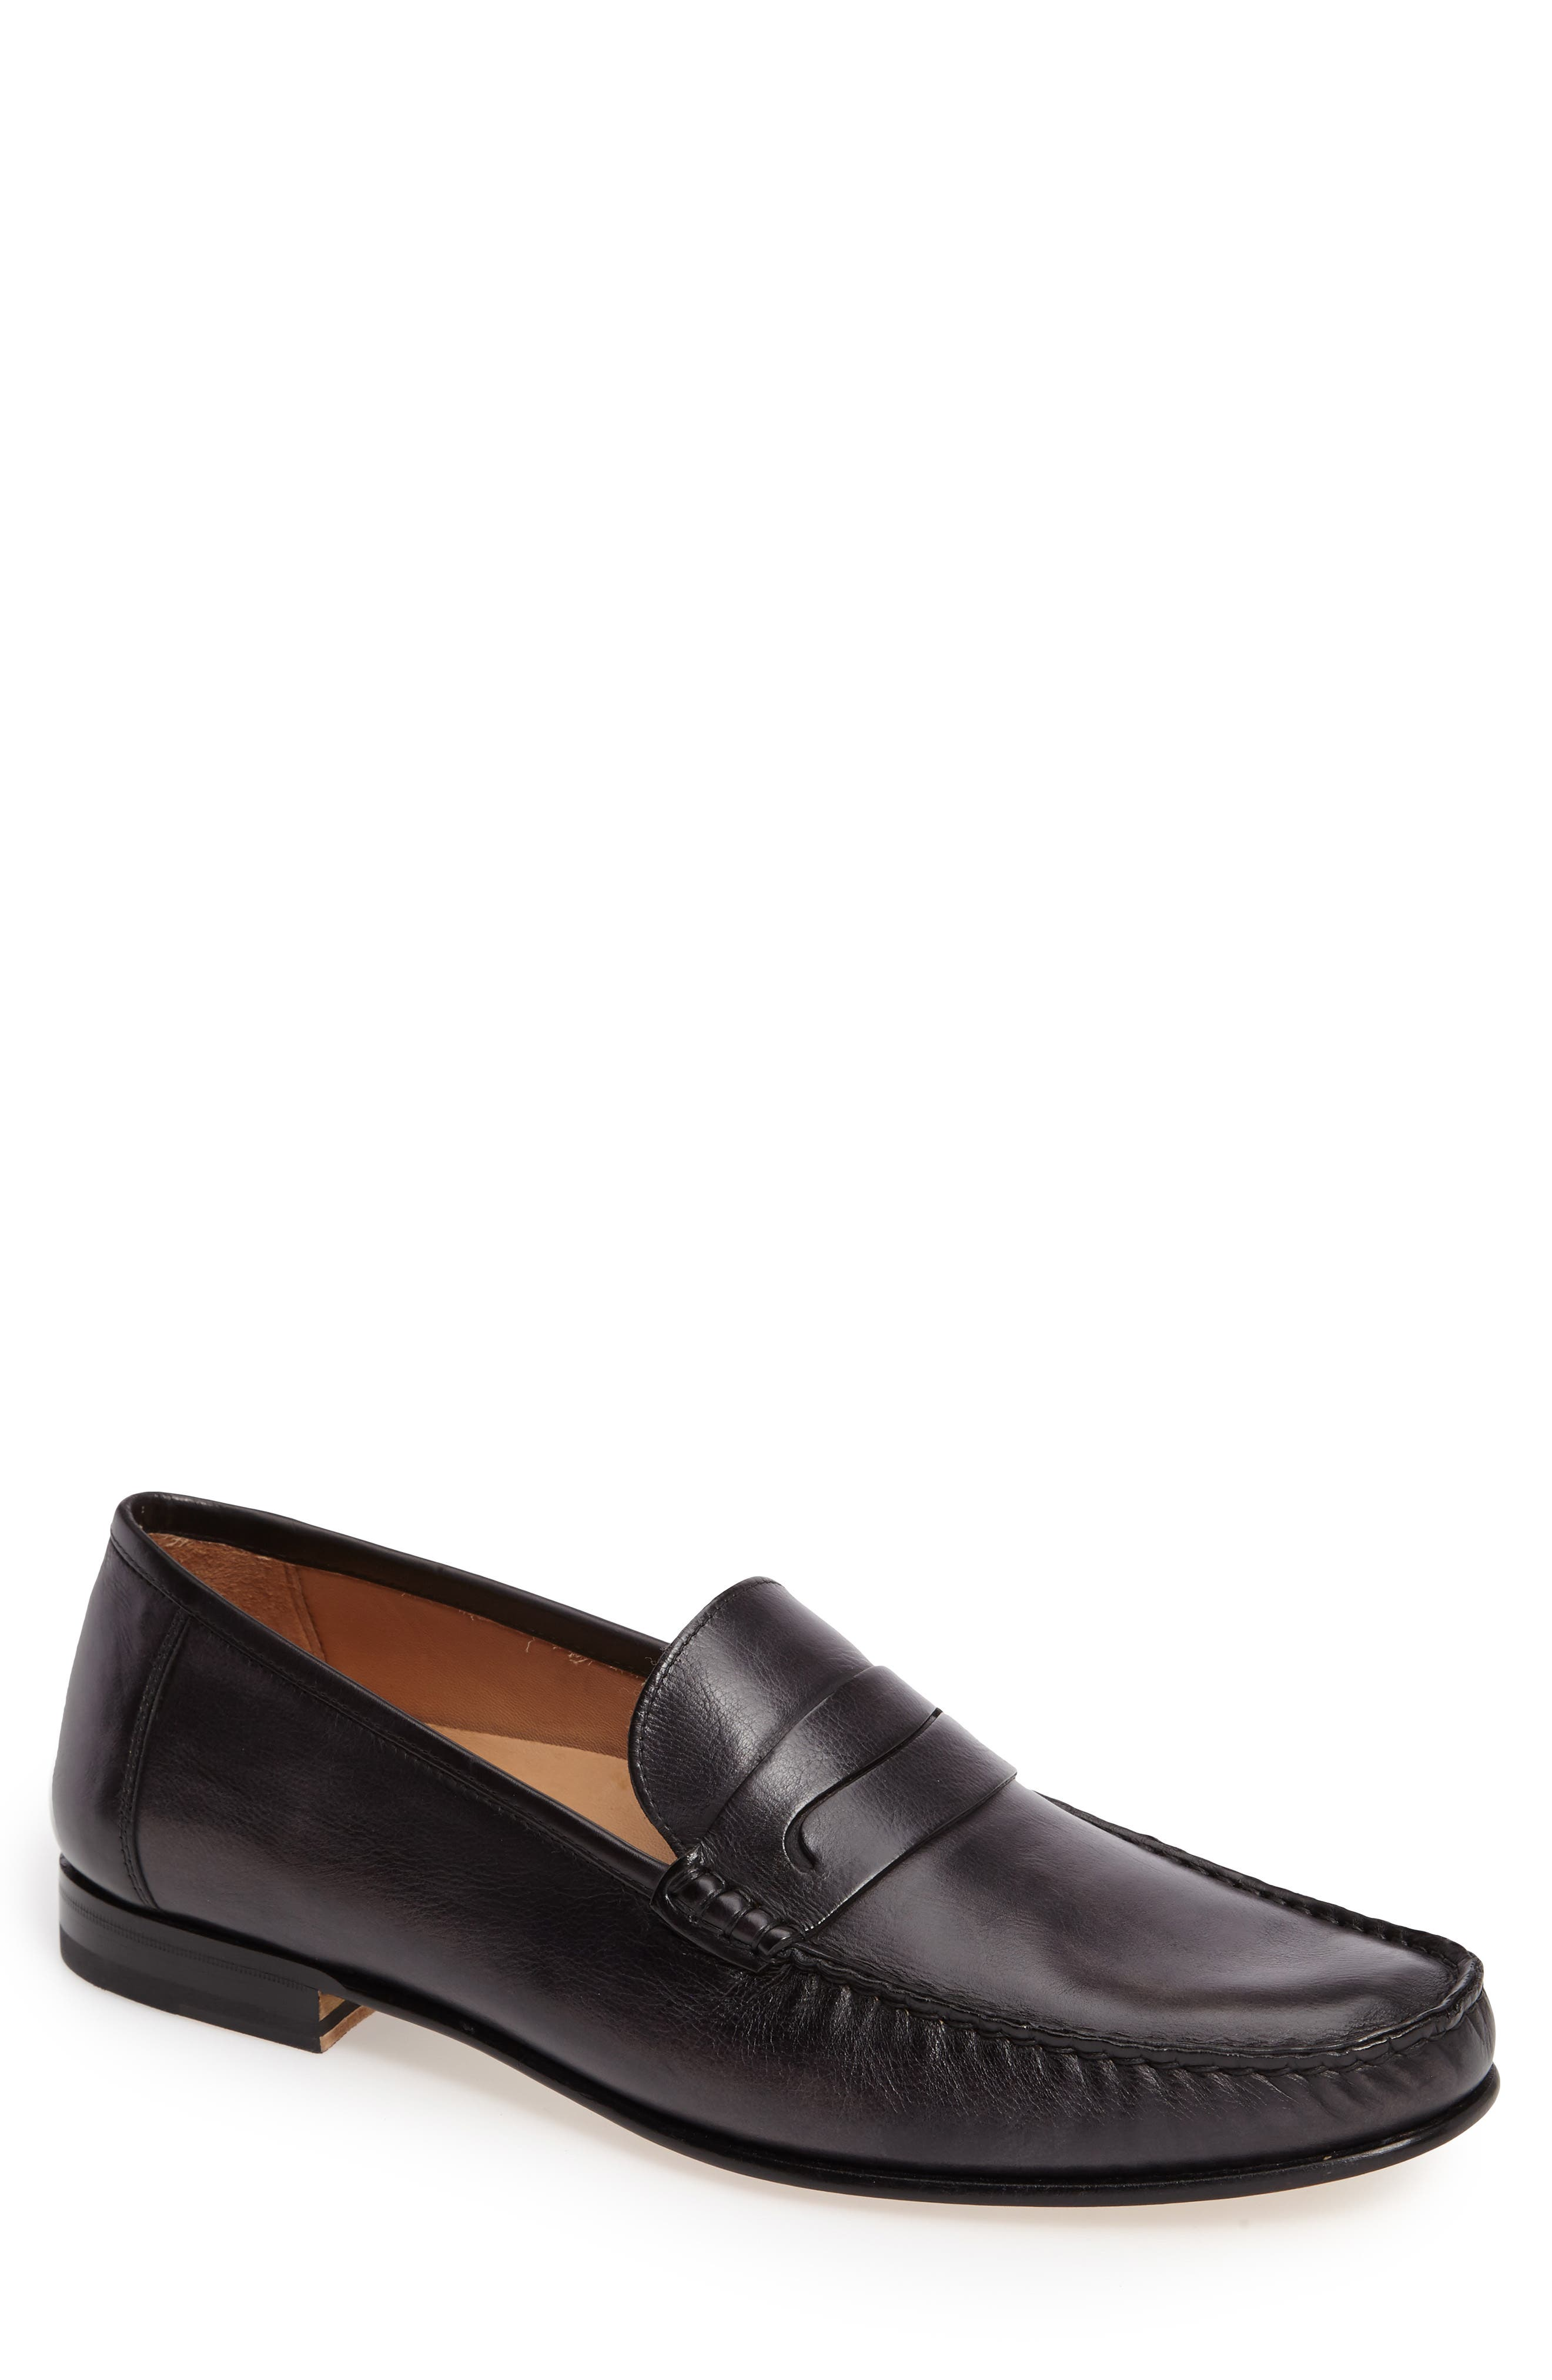 Pauli Classic Penny Loafer,                         Main,                         color, BLACK LEATHER